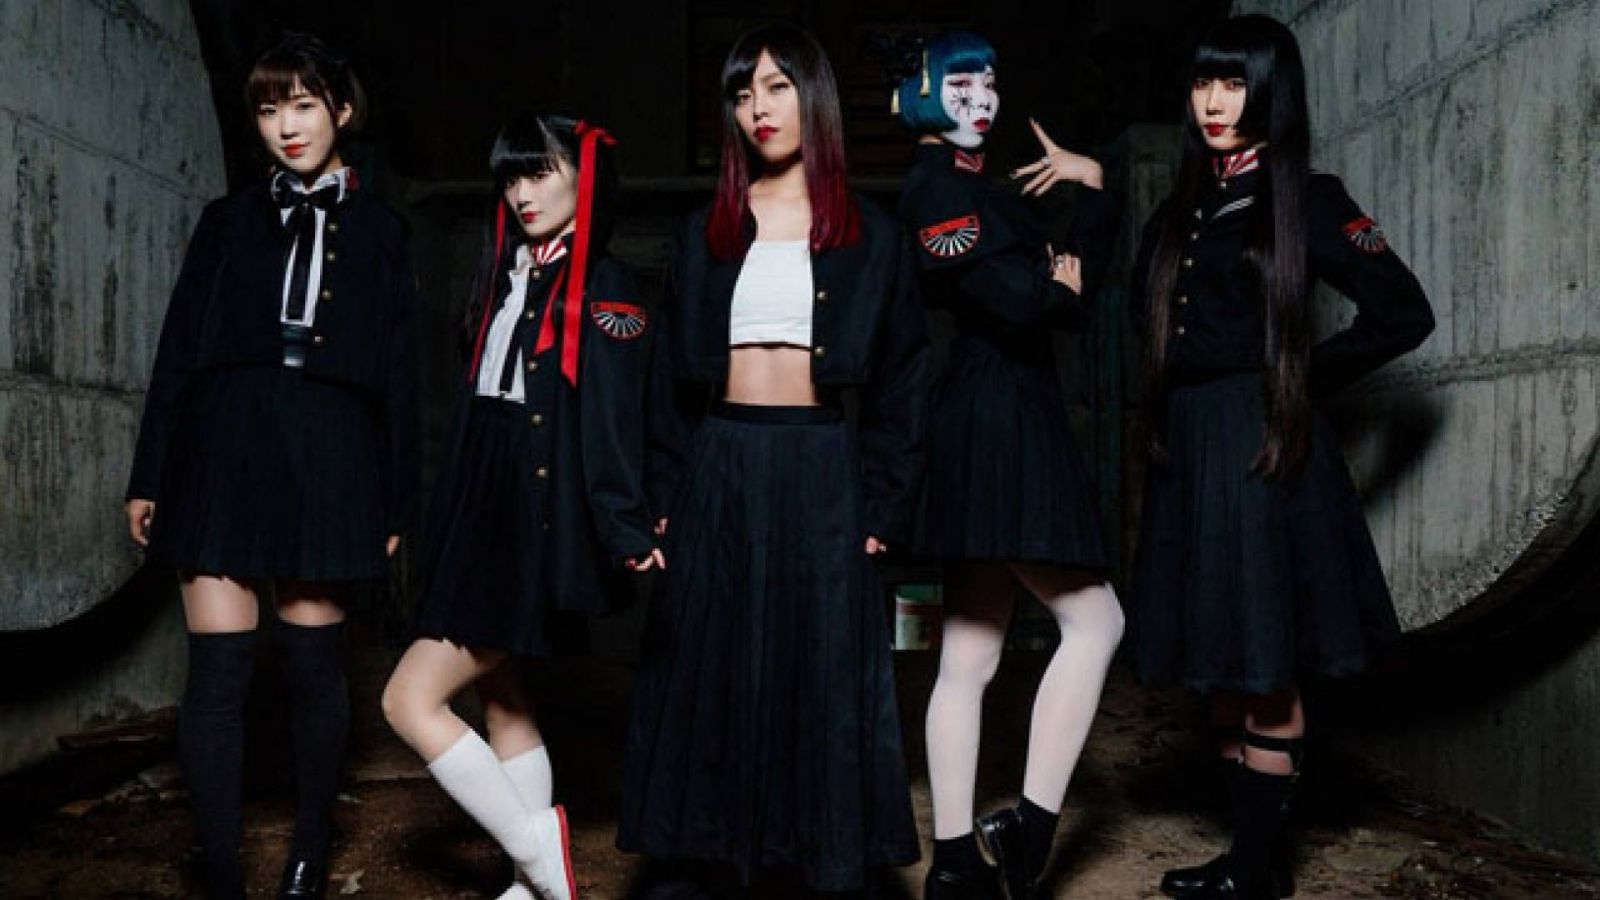 Two Members to Graduate from NECRONOMIDOL © NECRONOMIDOL. All rights reserved.